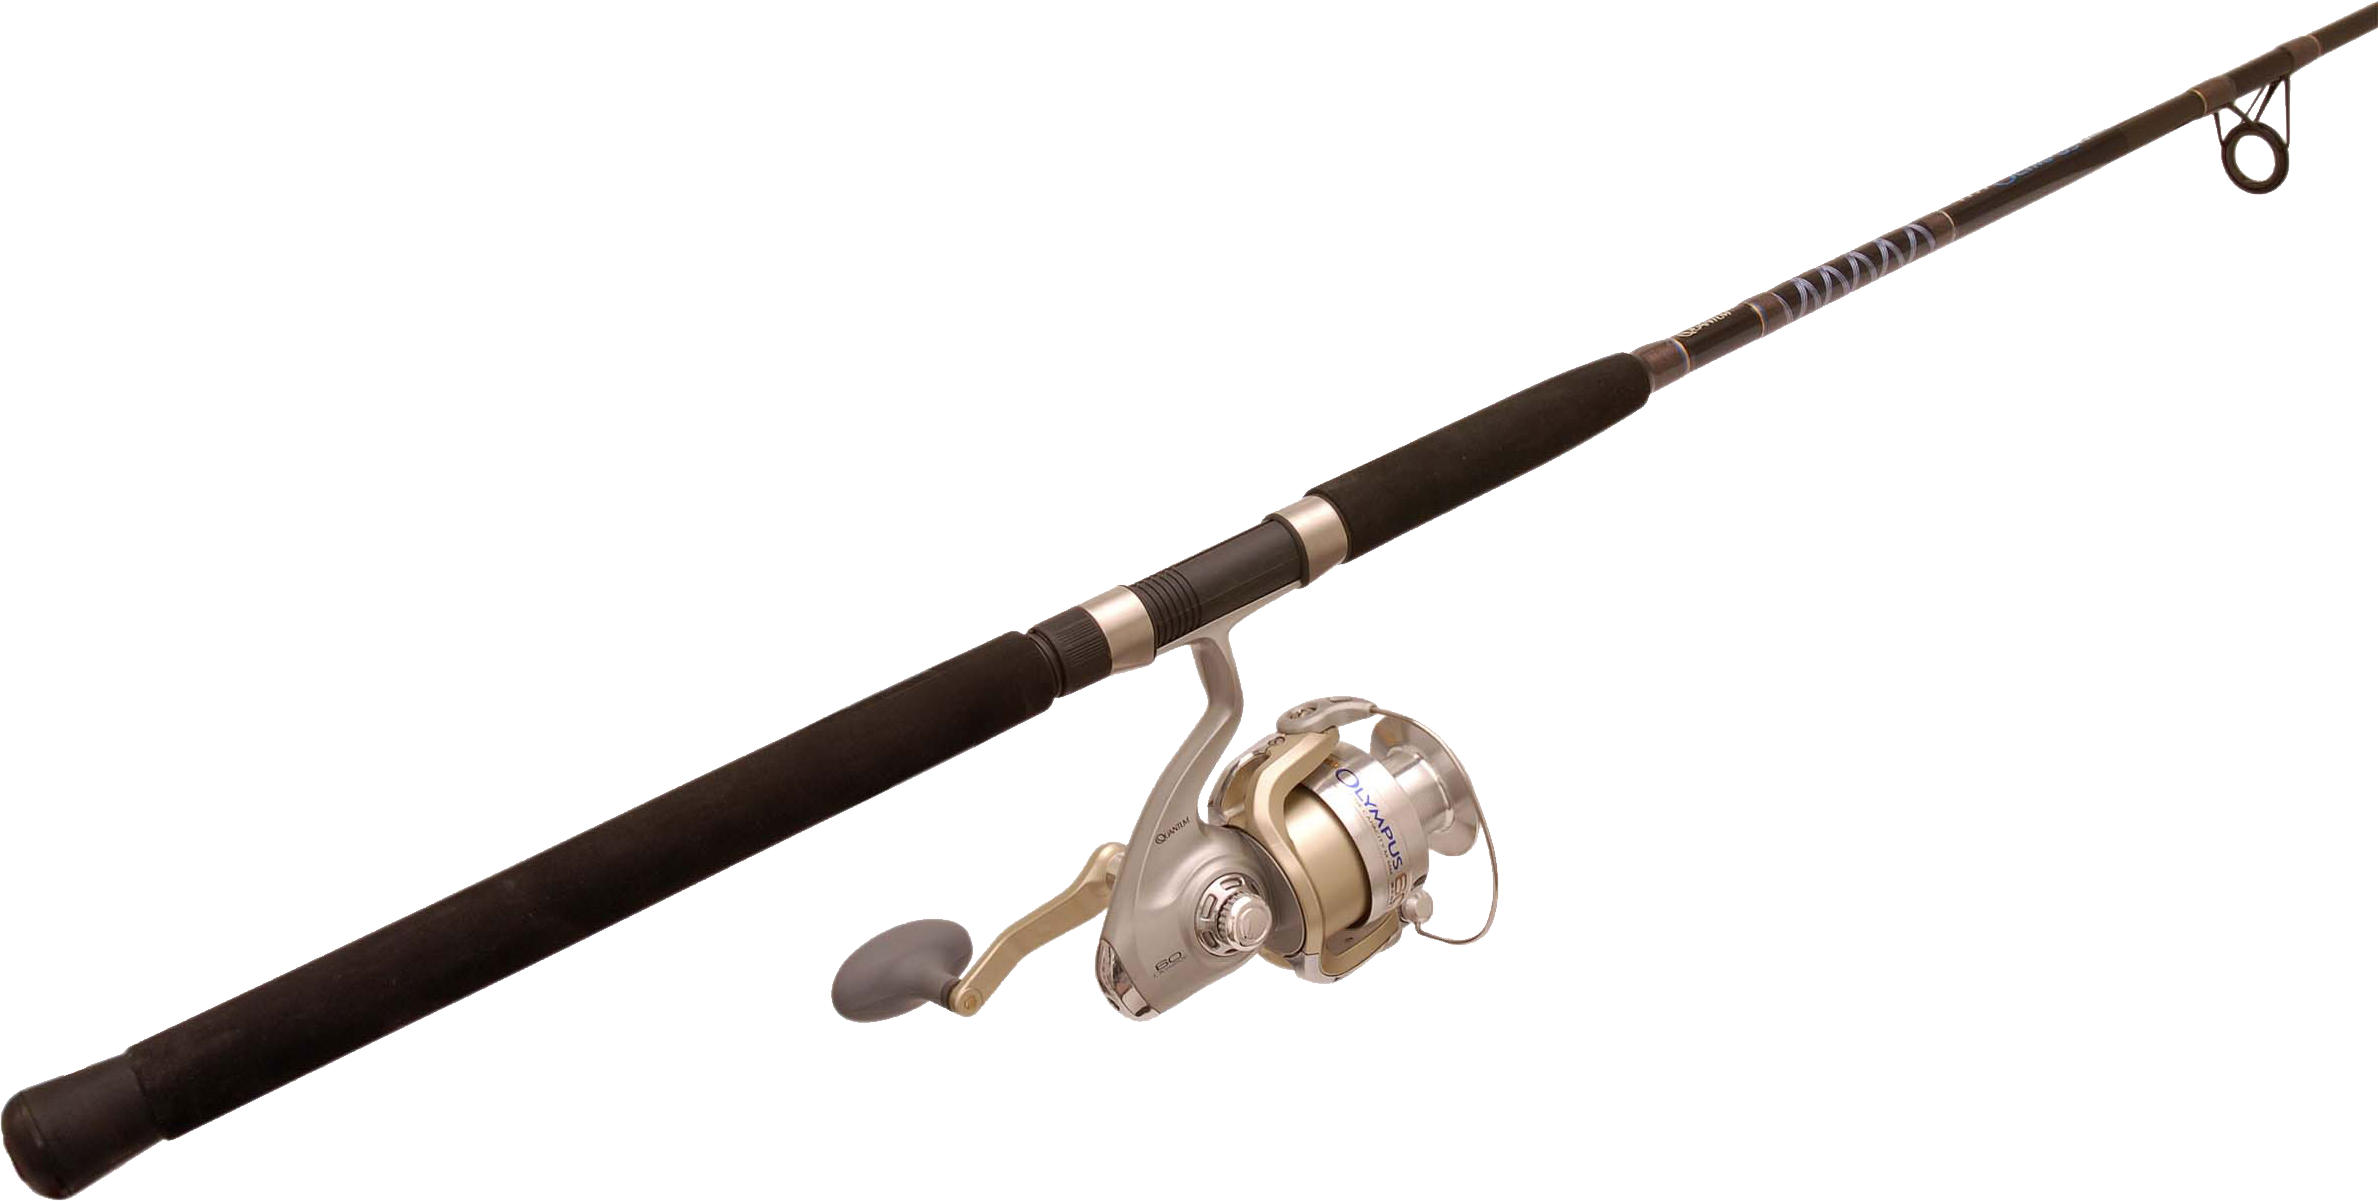 Fishing Pole Png Image PNG Image